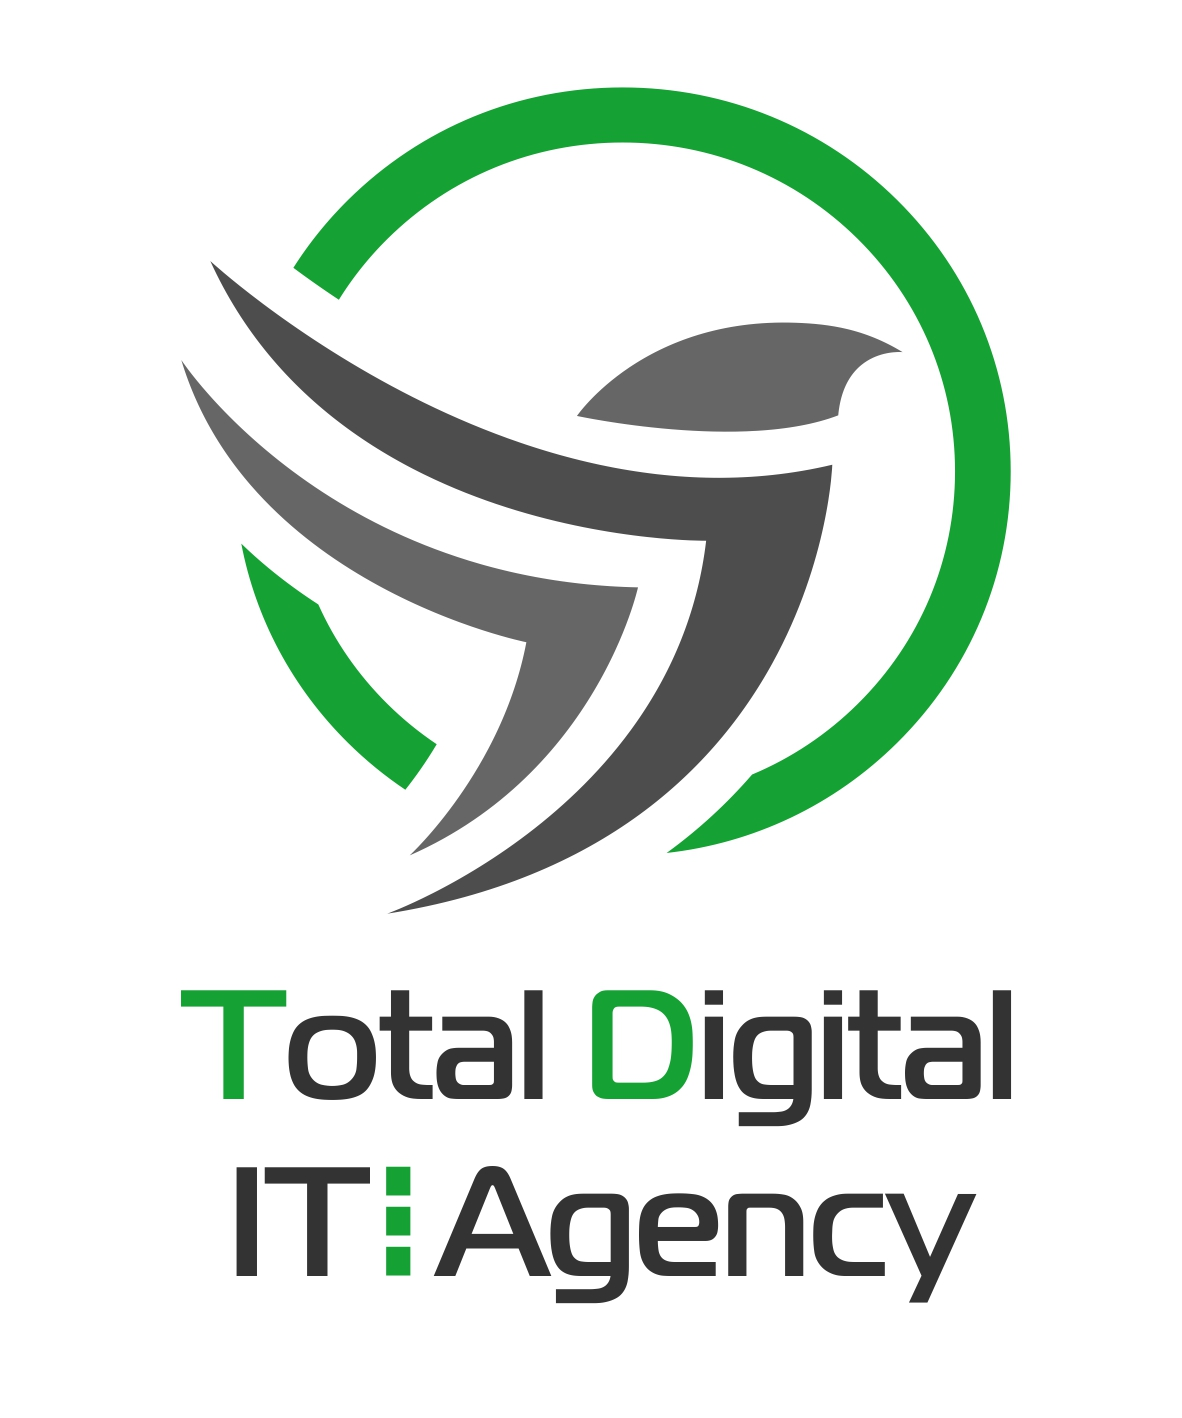 logo todal digital